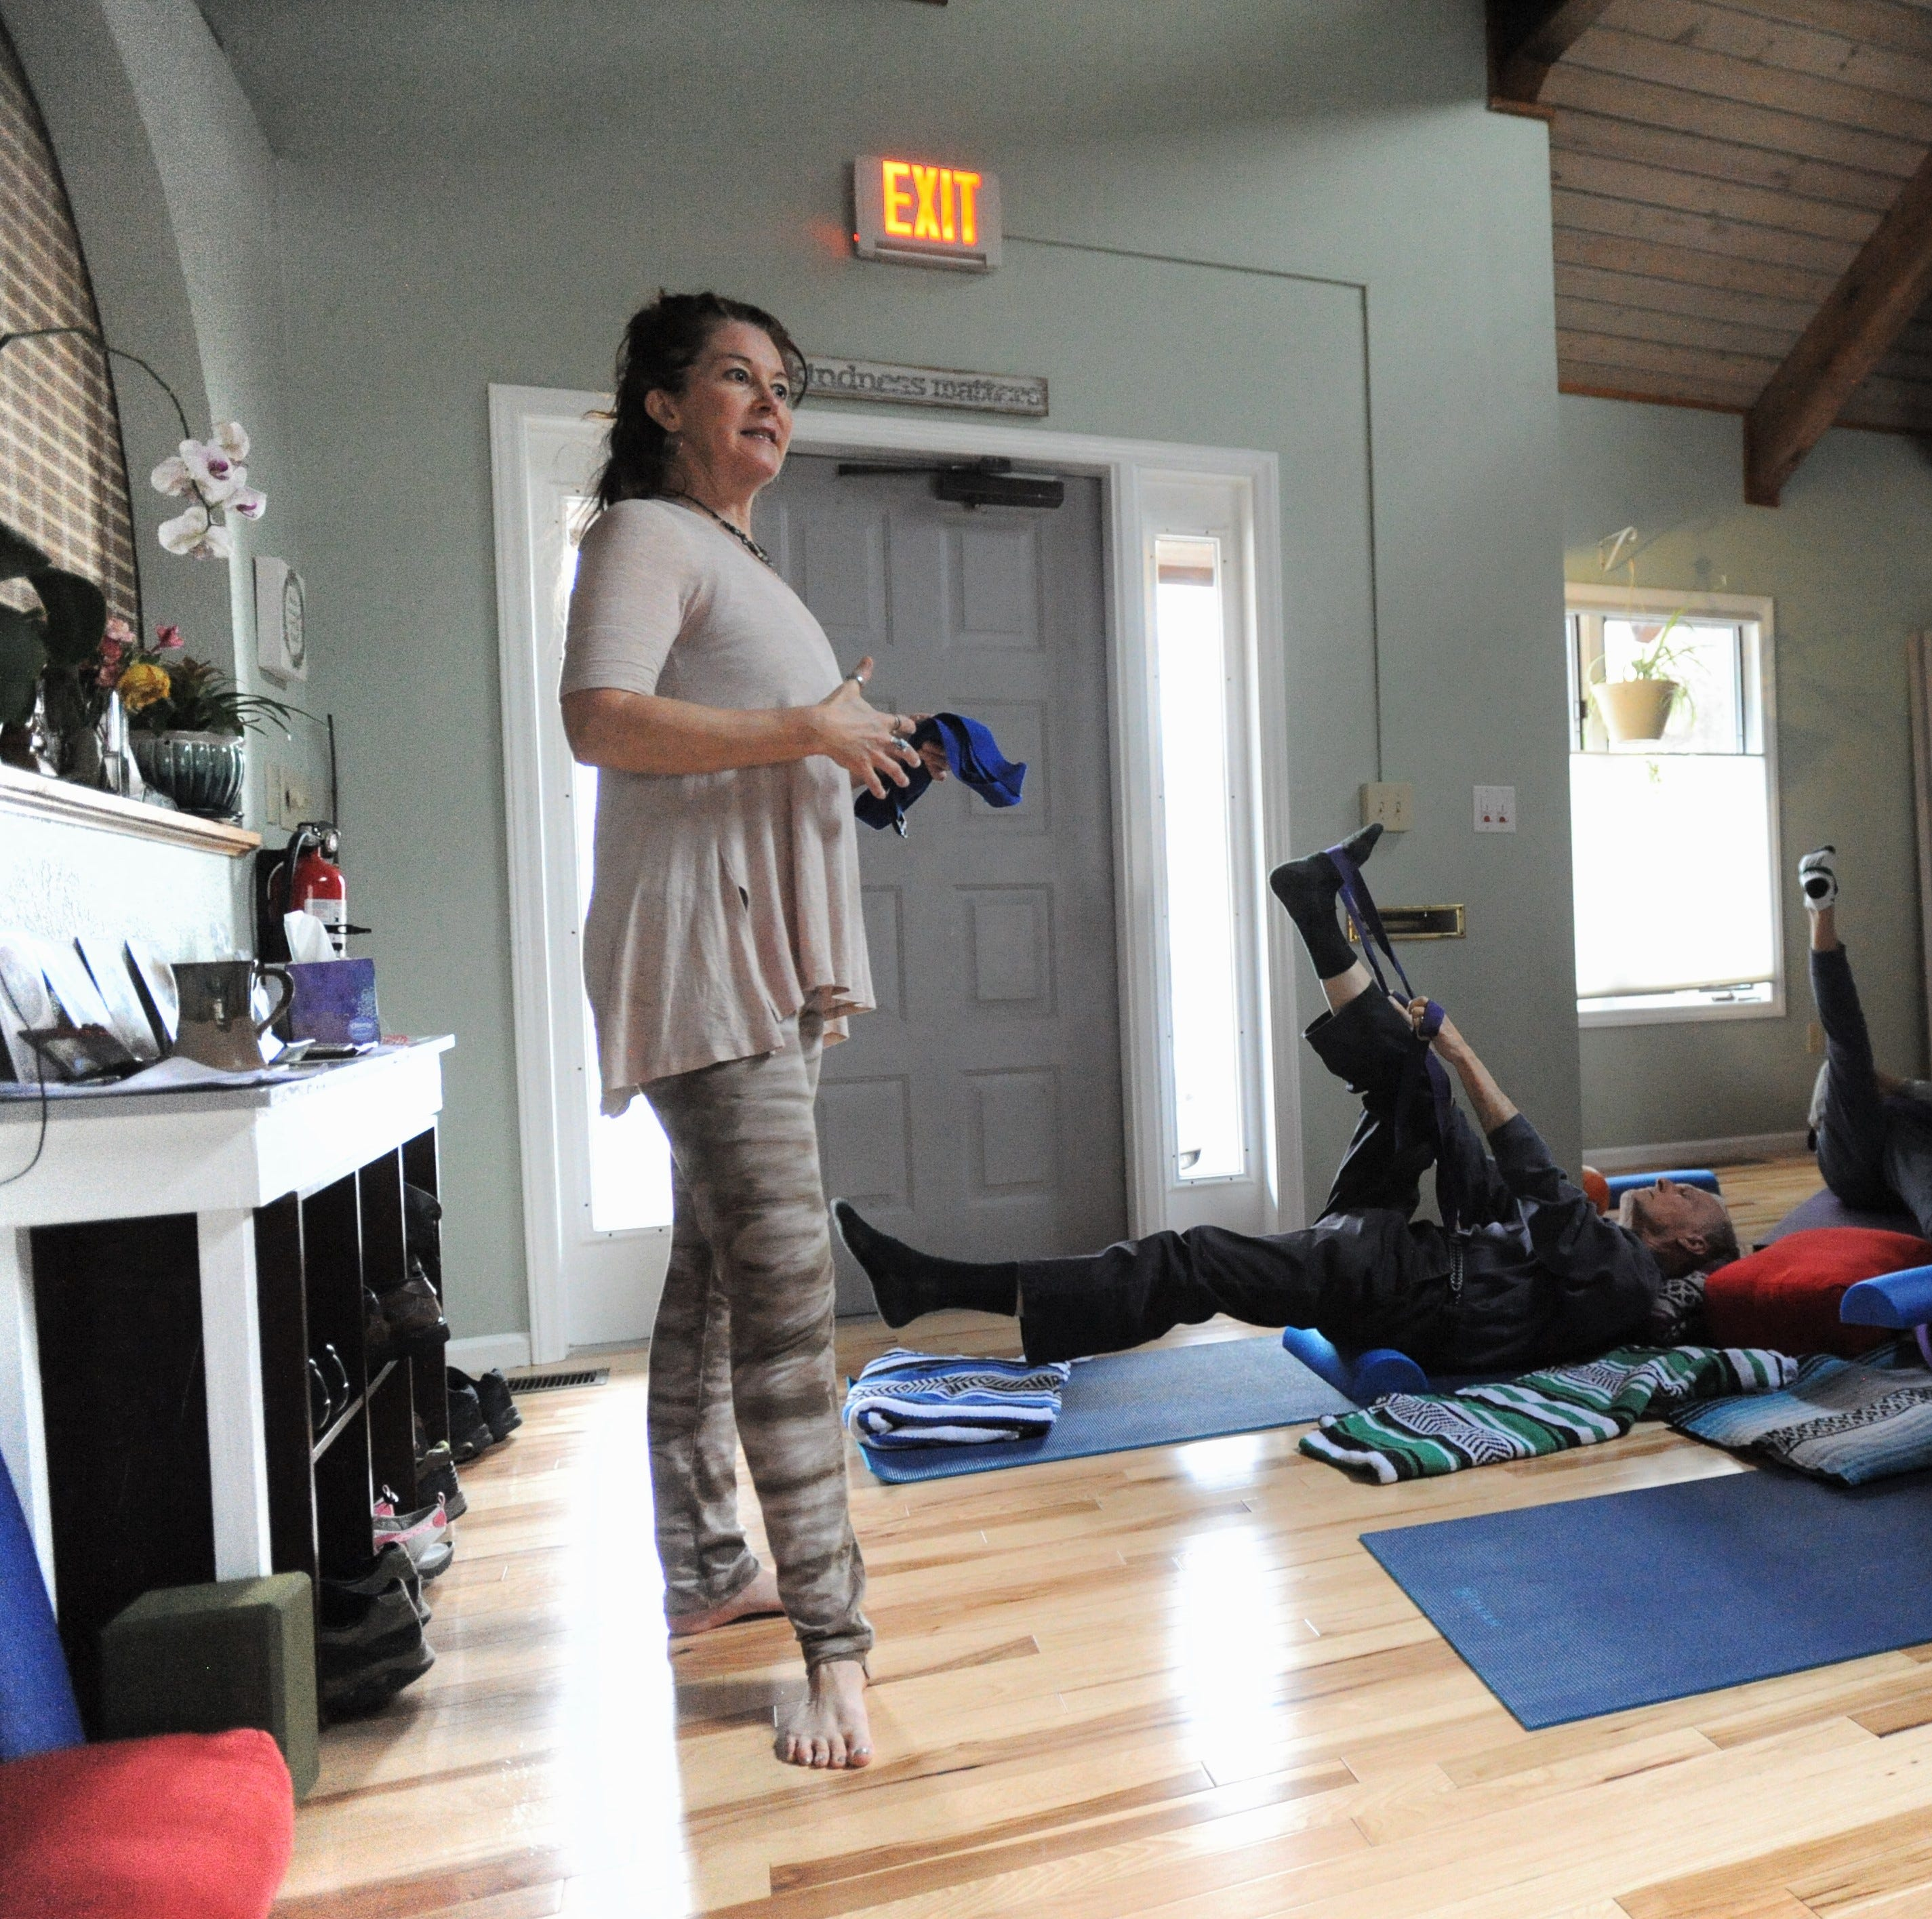 Yoga class with focus on back care still going strong in new Black Mountain location